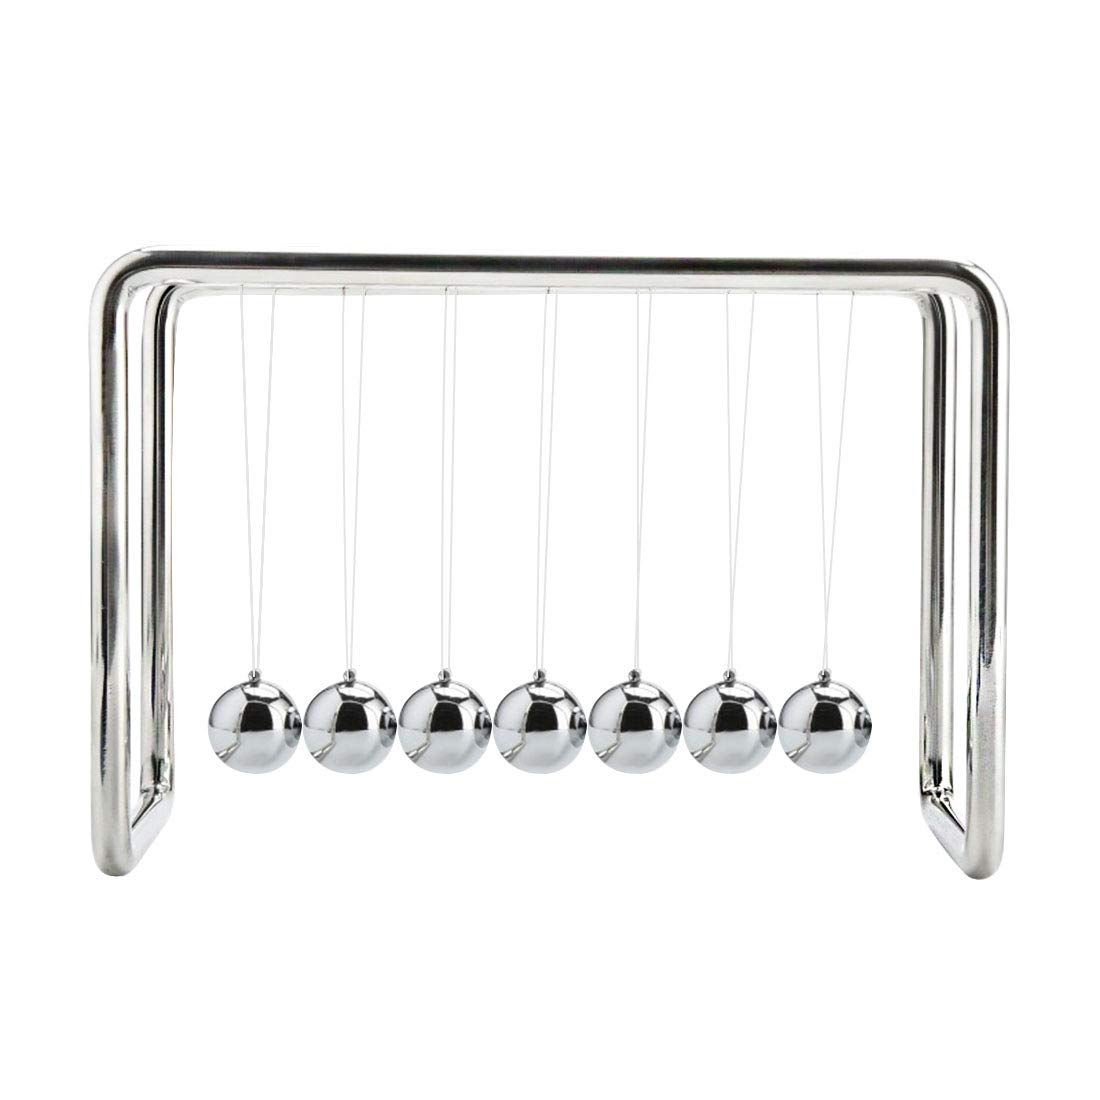 Newtons Cradle Balance Large Balls Science Psychology Puzzle Desk Fun Gadget (7 Ball White) by BOJIN